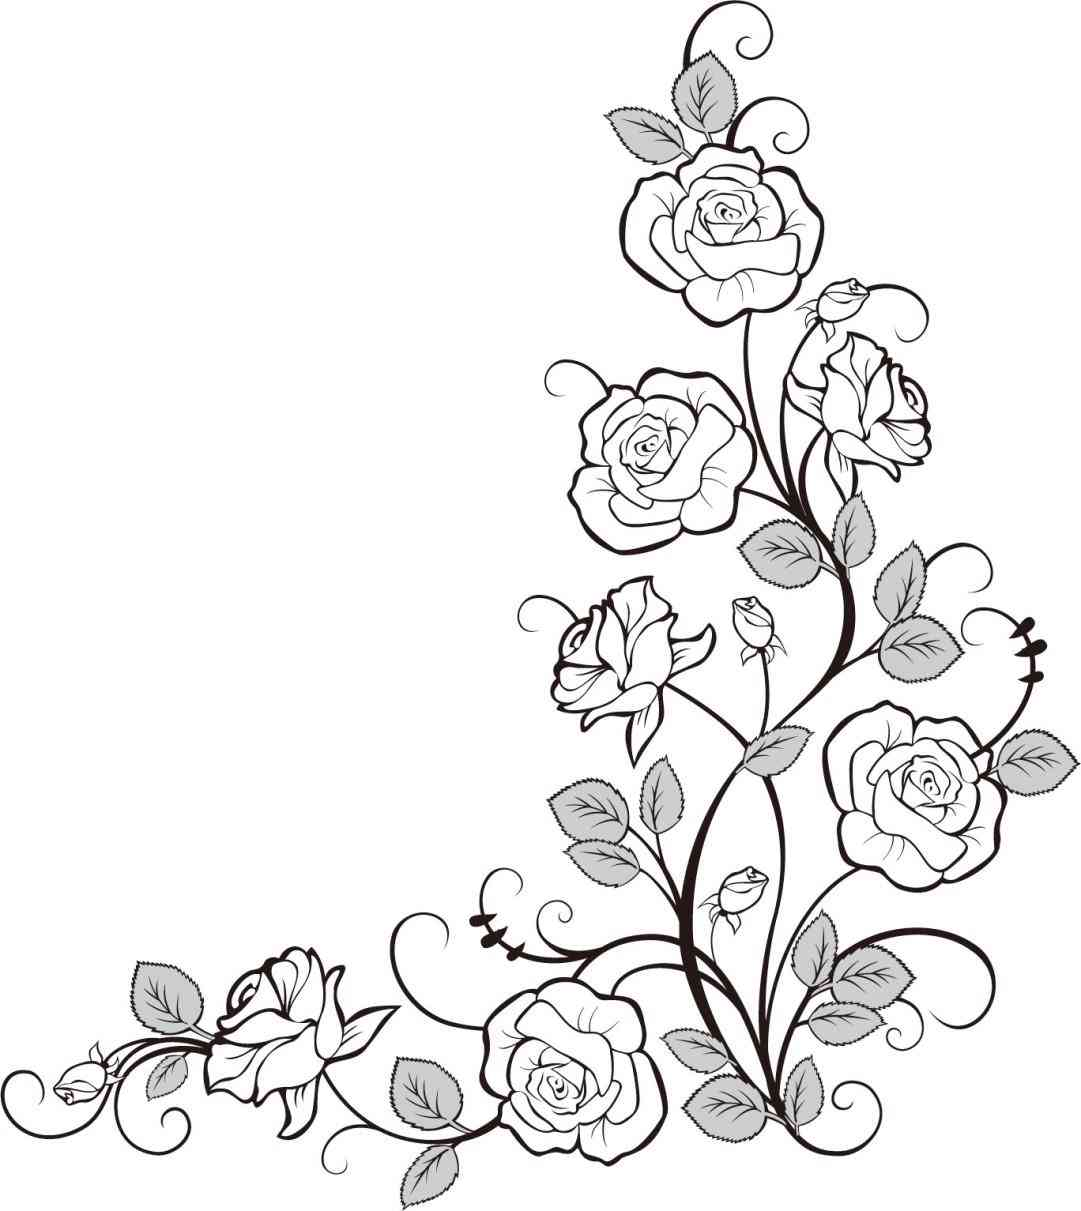 This is a graphic of Lucrative Rose Vine Drawing